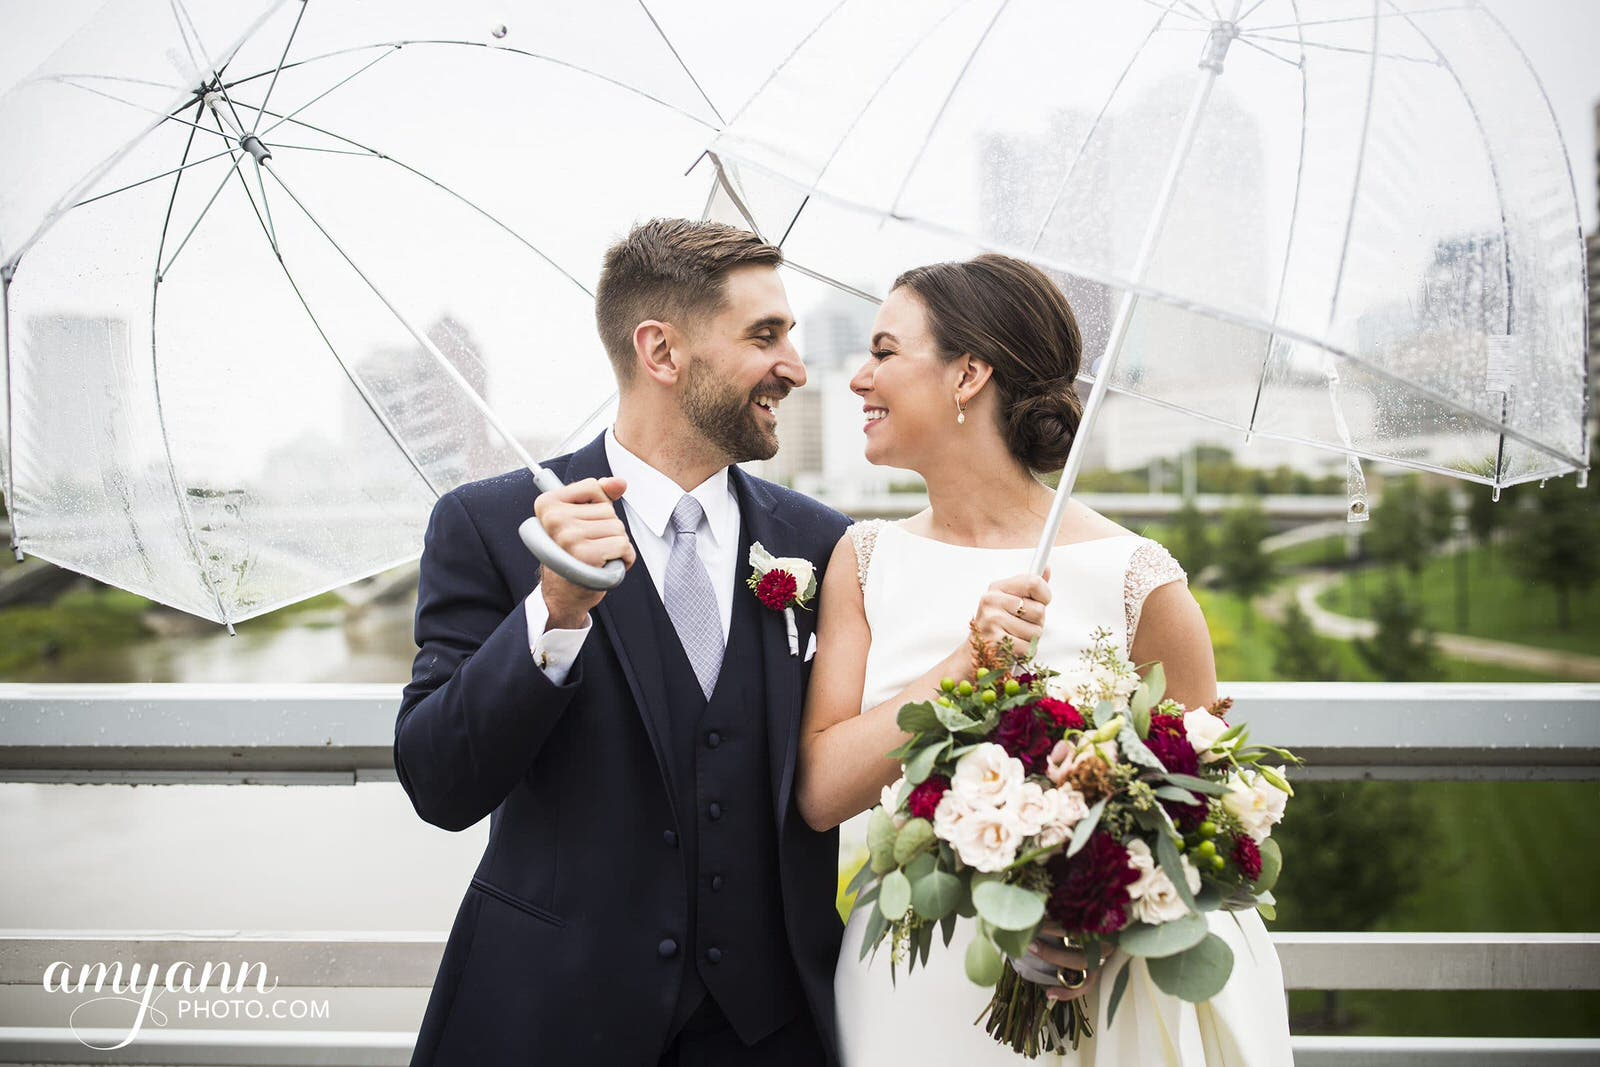 downtown columbus ohio rainy wedding photographer